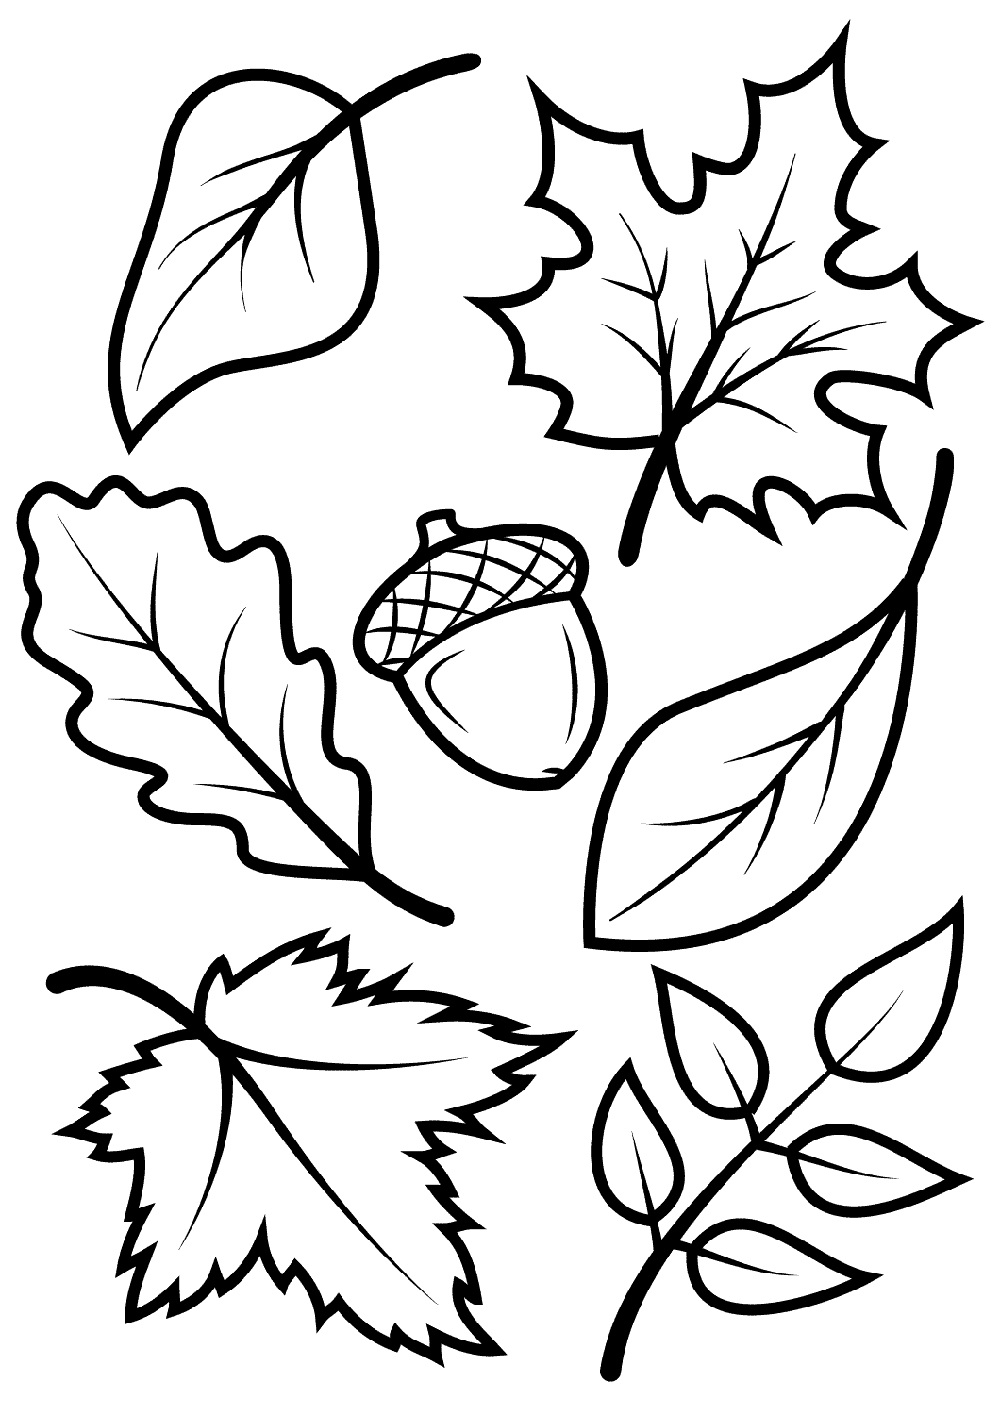 autumn leaves coloring pages autumn lights picture autumn leaves coloring pages autumn pages coloring leaves